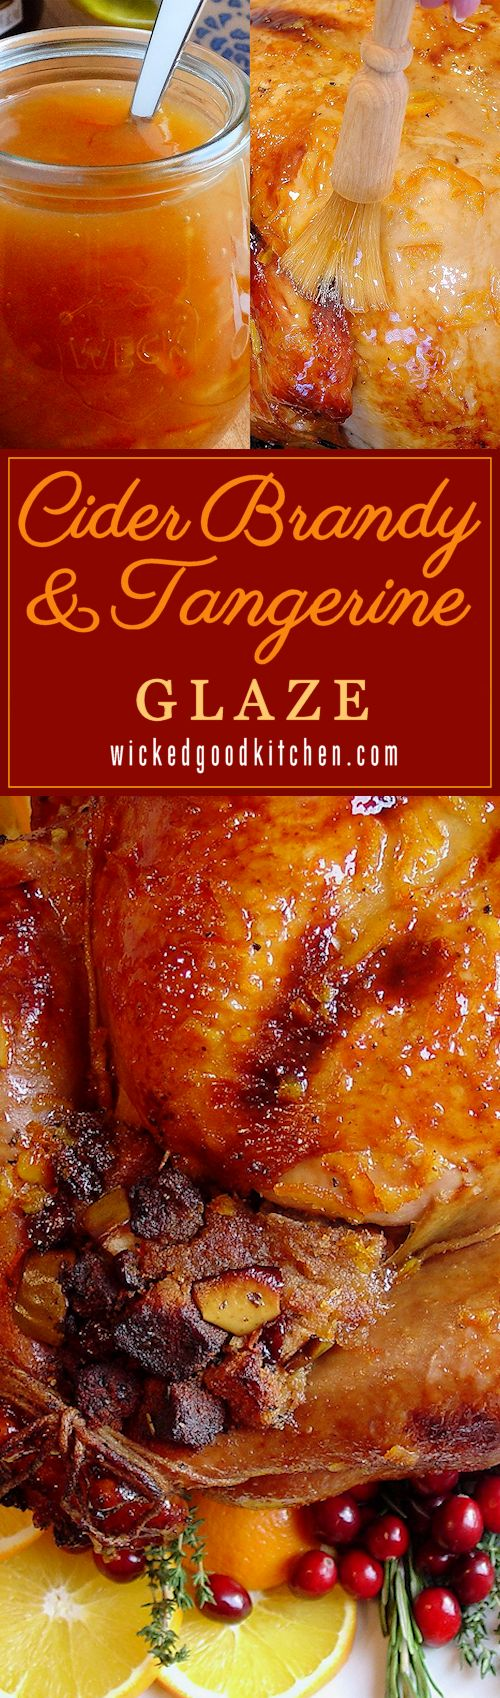 "Cider Brandy and Tangerine Glaze ~ Sublime holiday cider and citrus finishing glaze, kissed with Grand Marnier®, for roasted turkey, pork roast or ham as the sparkling gem on the holiday table. Made in just 15 minutes. Perfect ""crowning touch"" for #Thanksgiving turkey or #Christmas ham. Guests over the #Holidays will rave! 